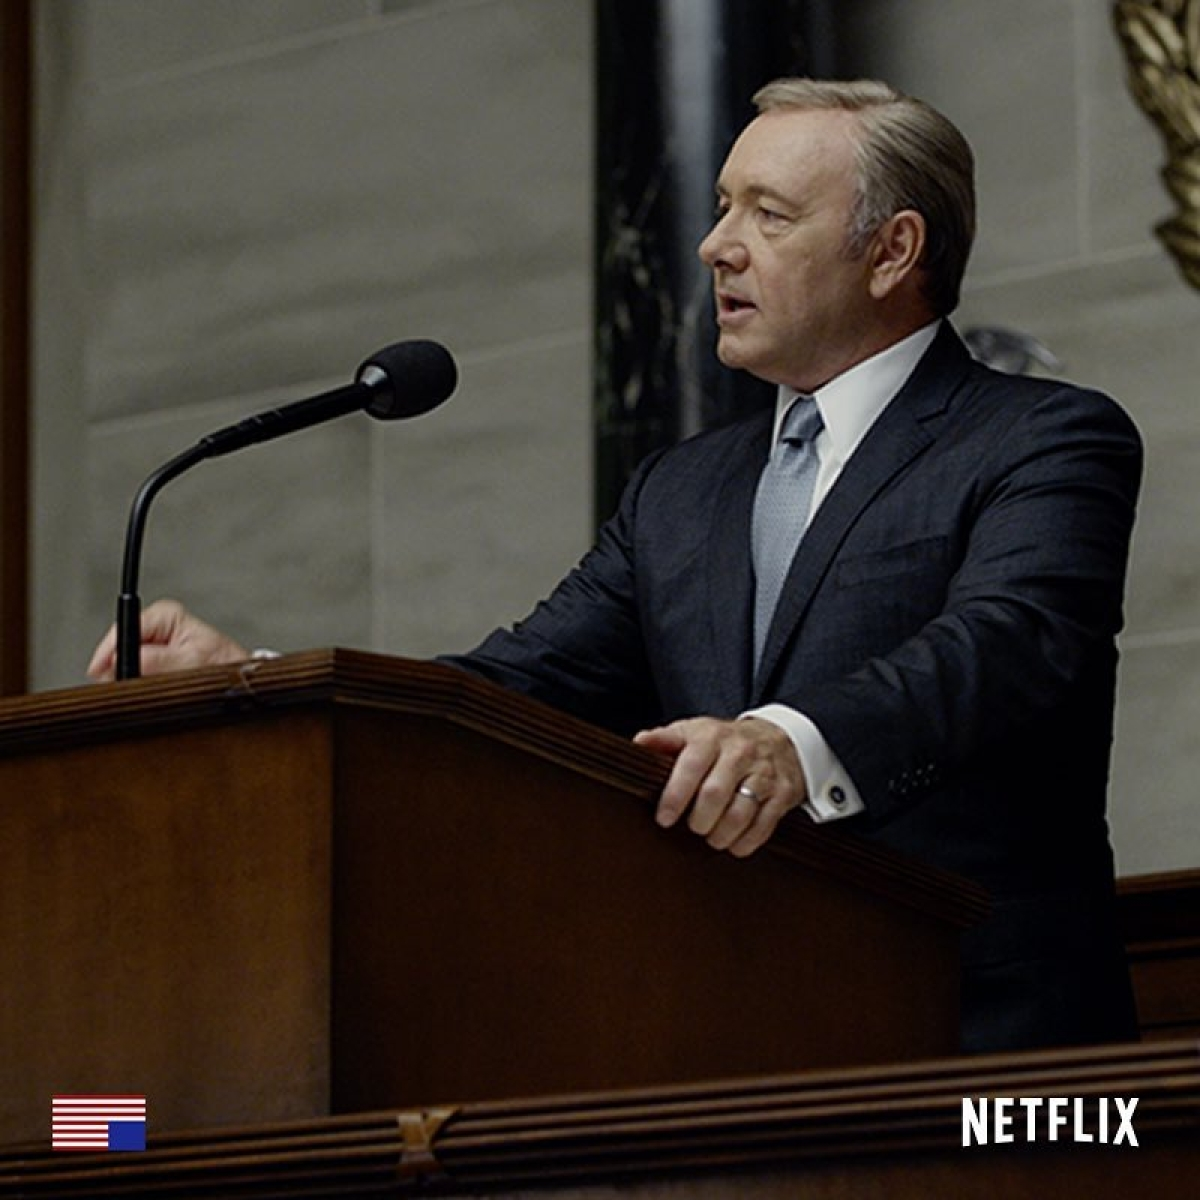 Kevin Spacey denies Anthony Rapp's sexual assault allegations